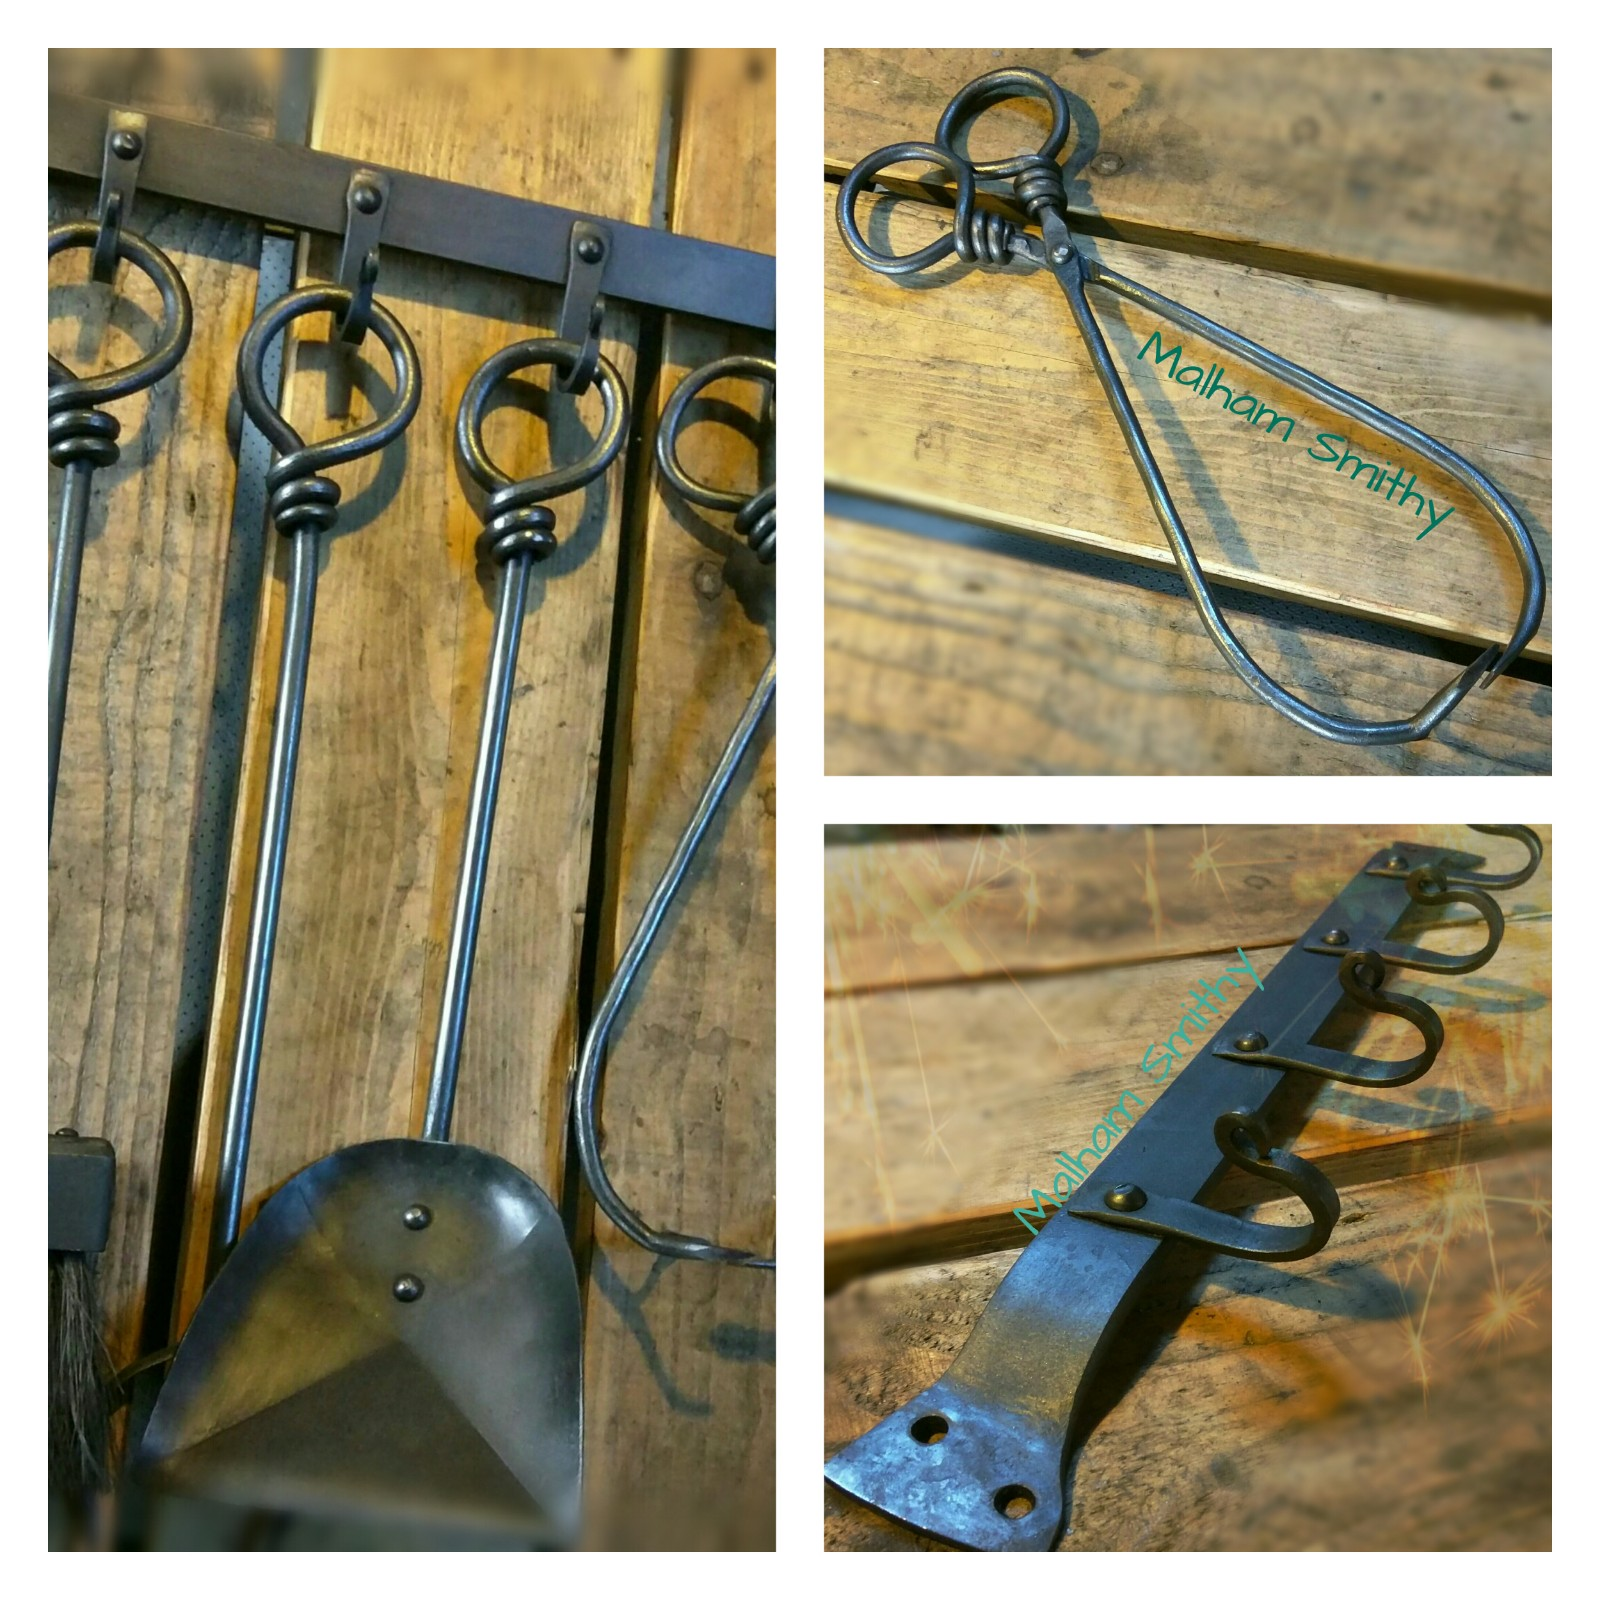 Rat's tail wrap fire tools from the Malham Smithy Blacksmiths